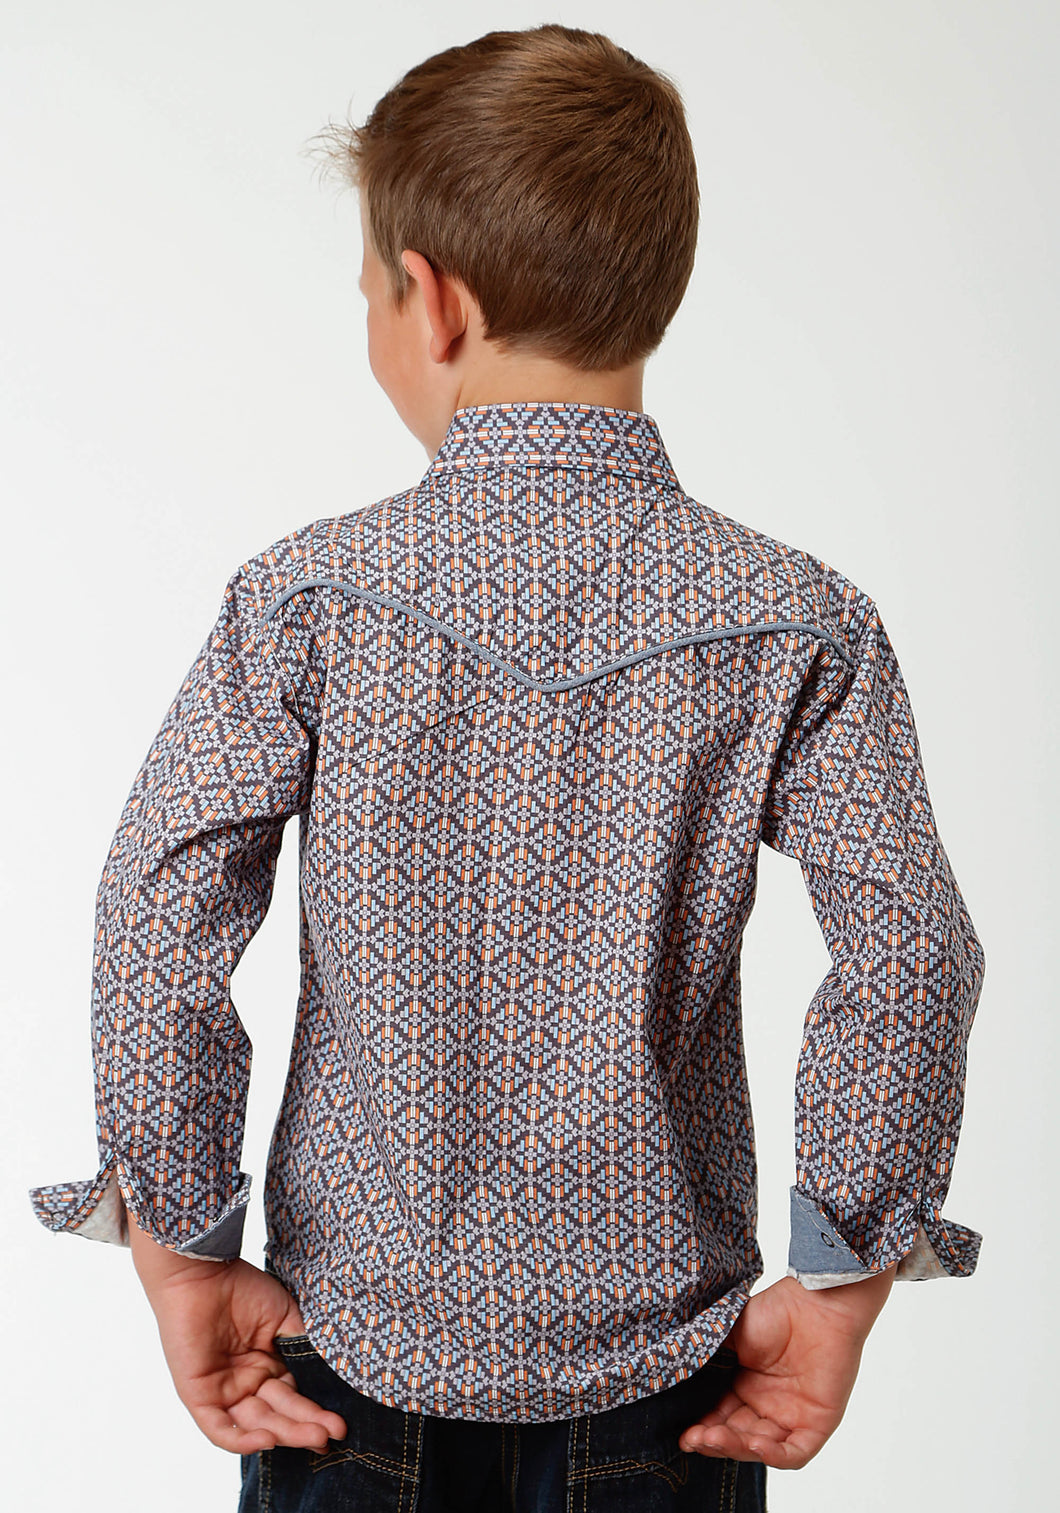 West Made Collection Westm Boys Long Sleeve Shirt 1538 Moonlight Geo